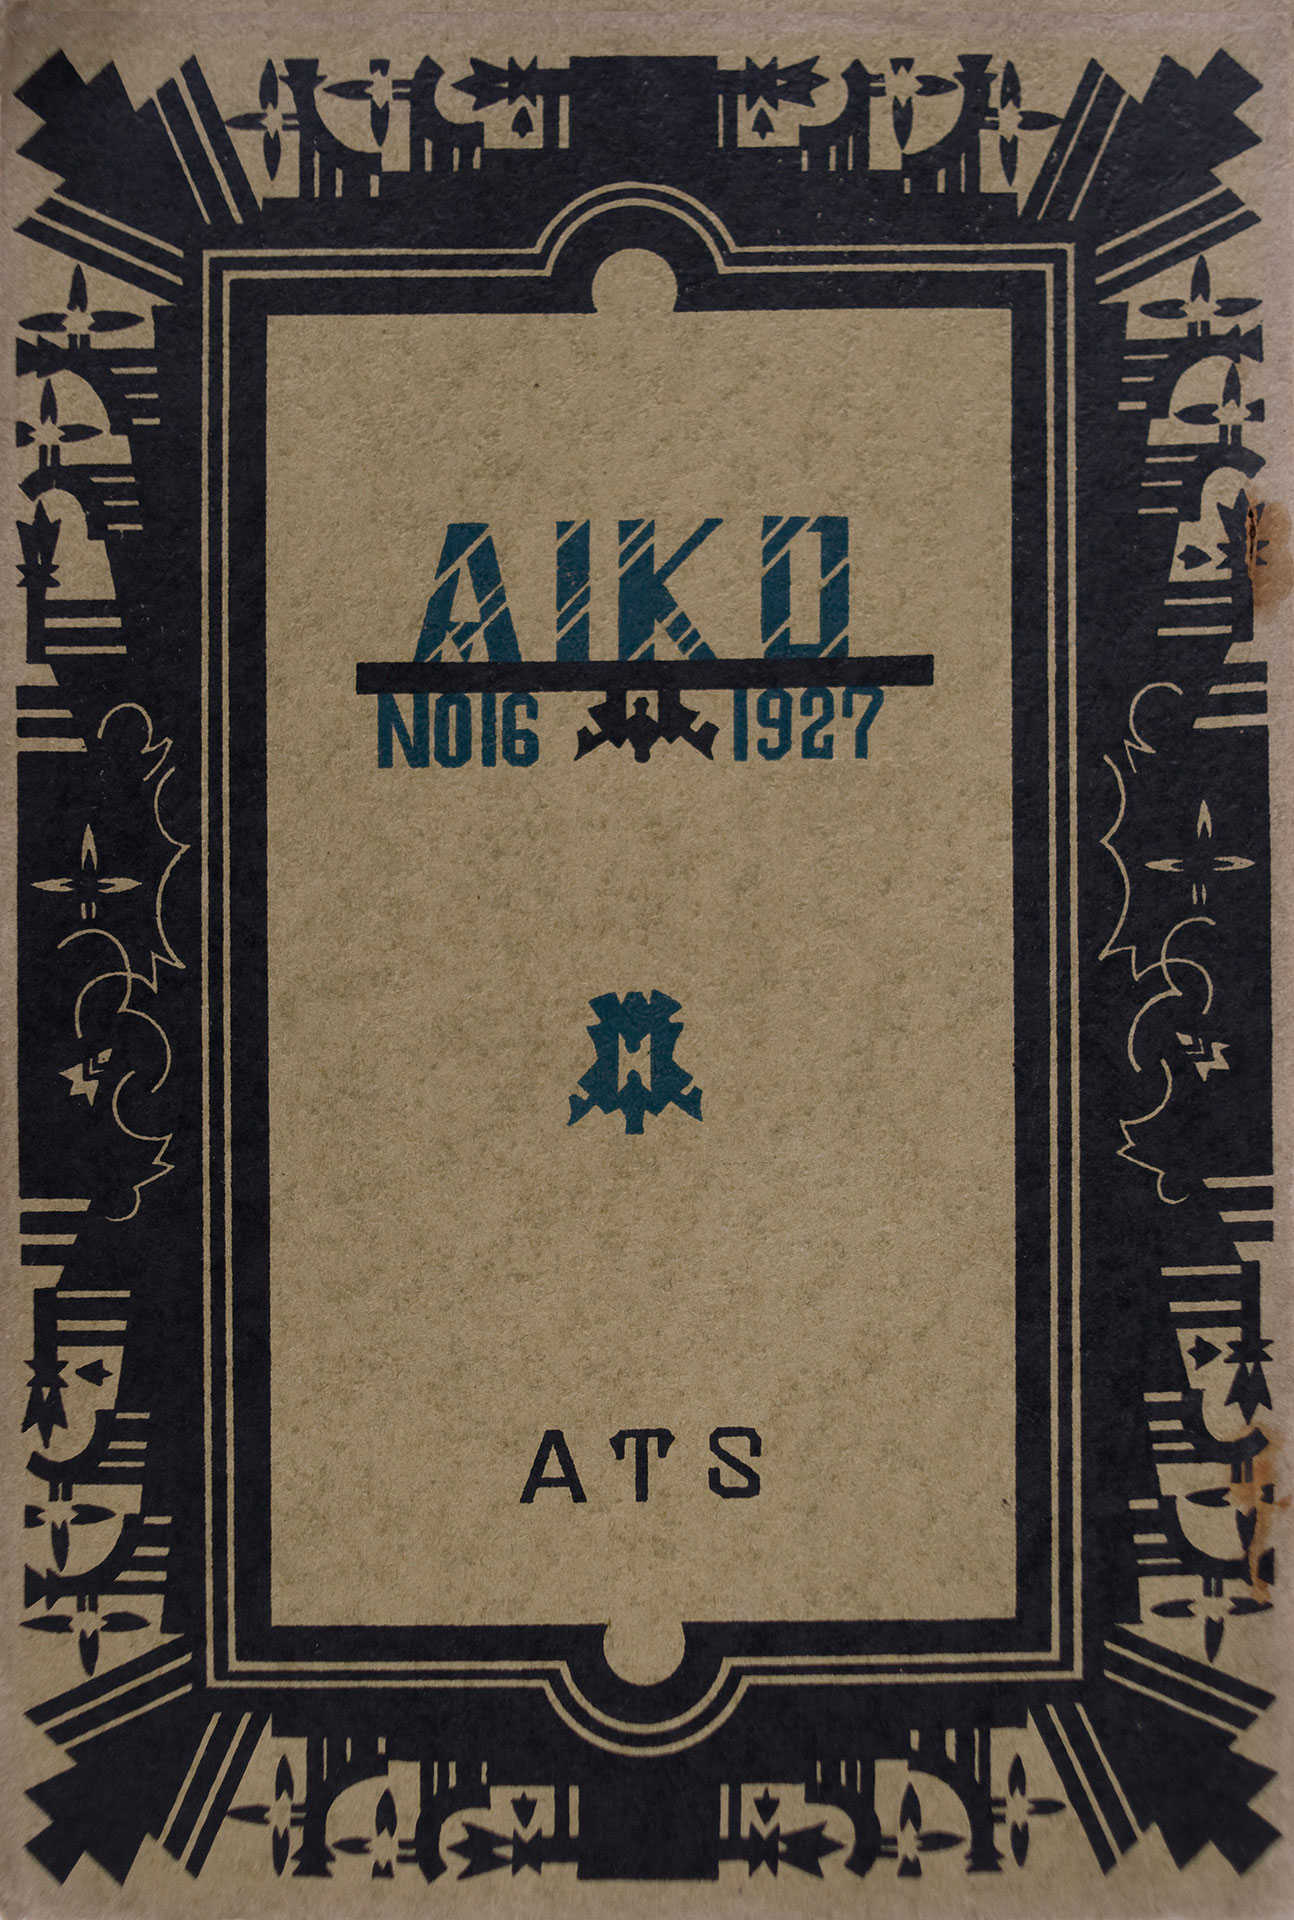 愛工 第拾六號 表紙 - Cover of School Magazine 'Aiko 16'